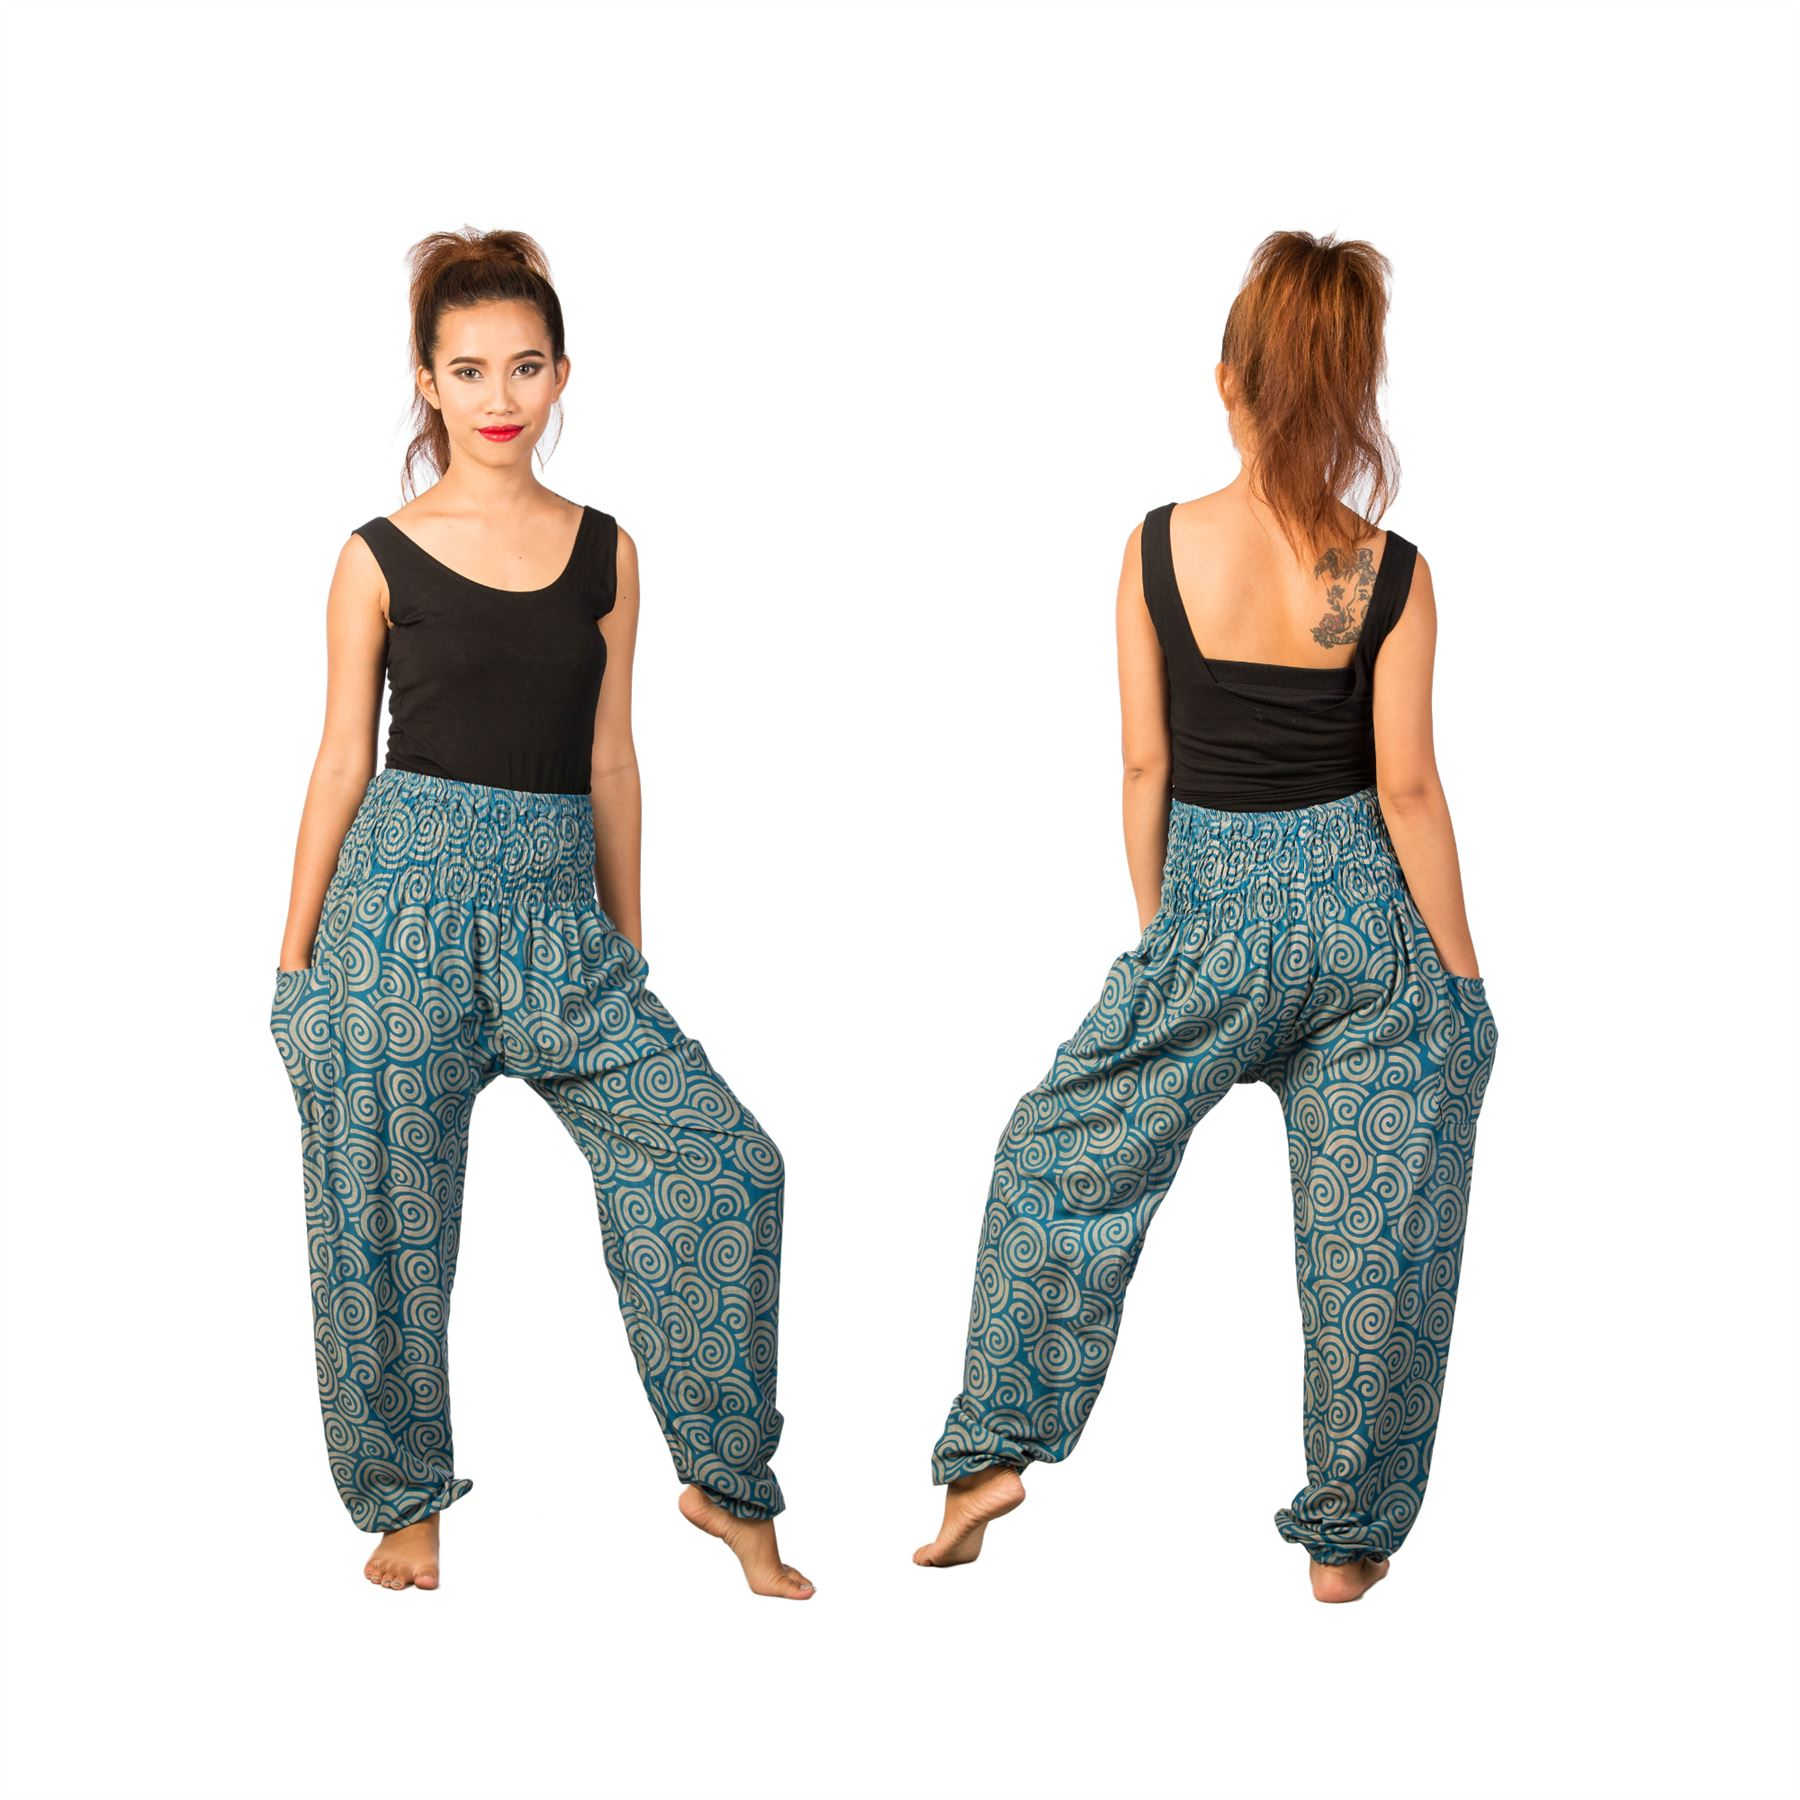 Lofbaz-Unisex-Pattern-Loose-Fit-Smock-Boho-Yoga-Active-Pants